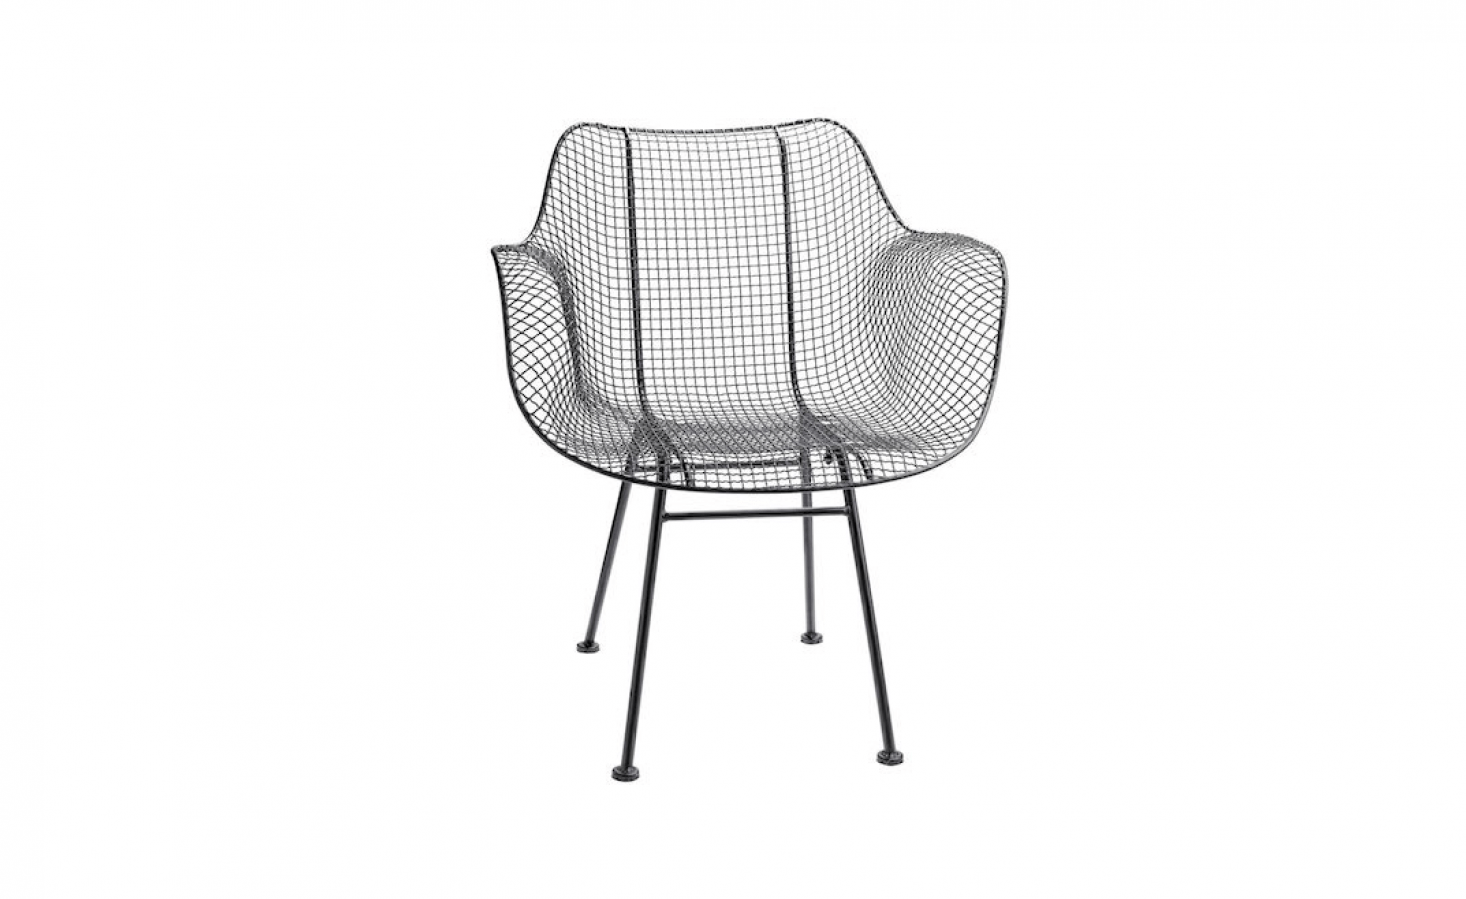 A Modern Wire Chair made of powder-coated metal is suitable for covered outdoor use; currently on sale for $3 from Rejuvenation.